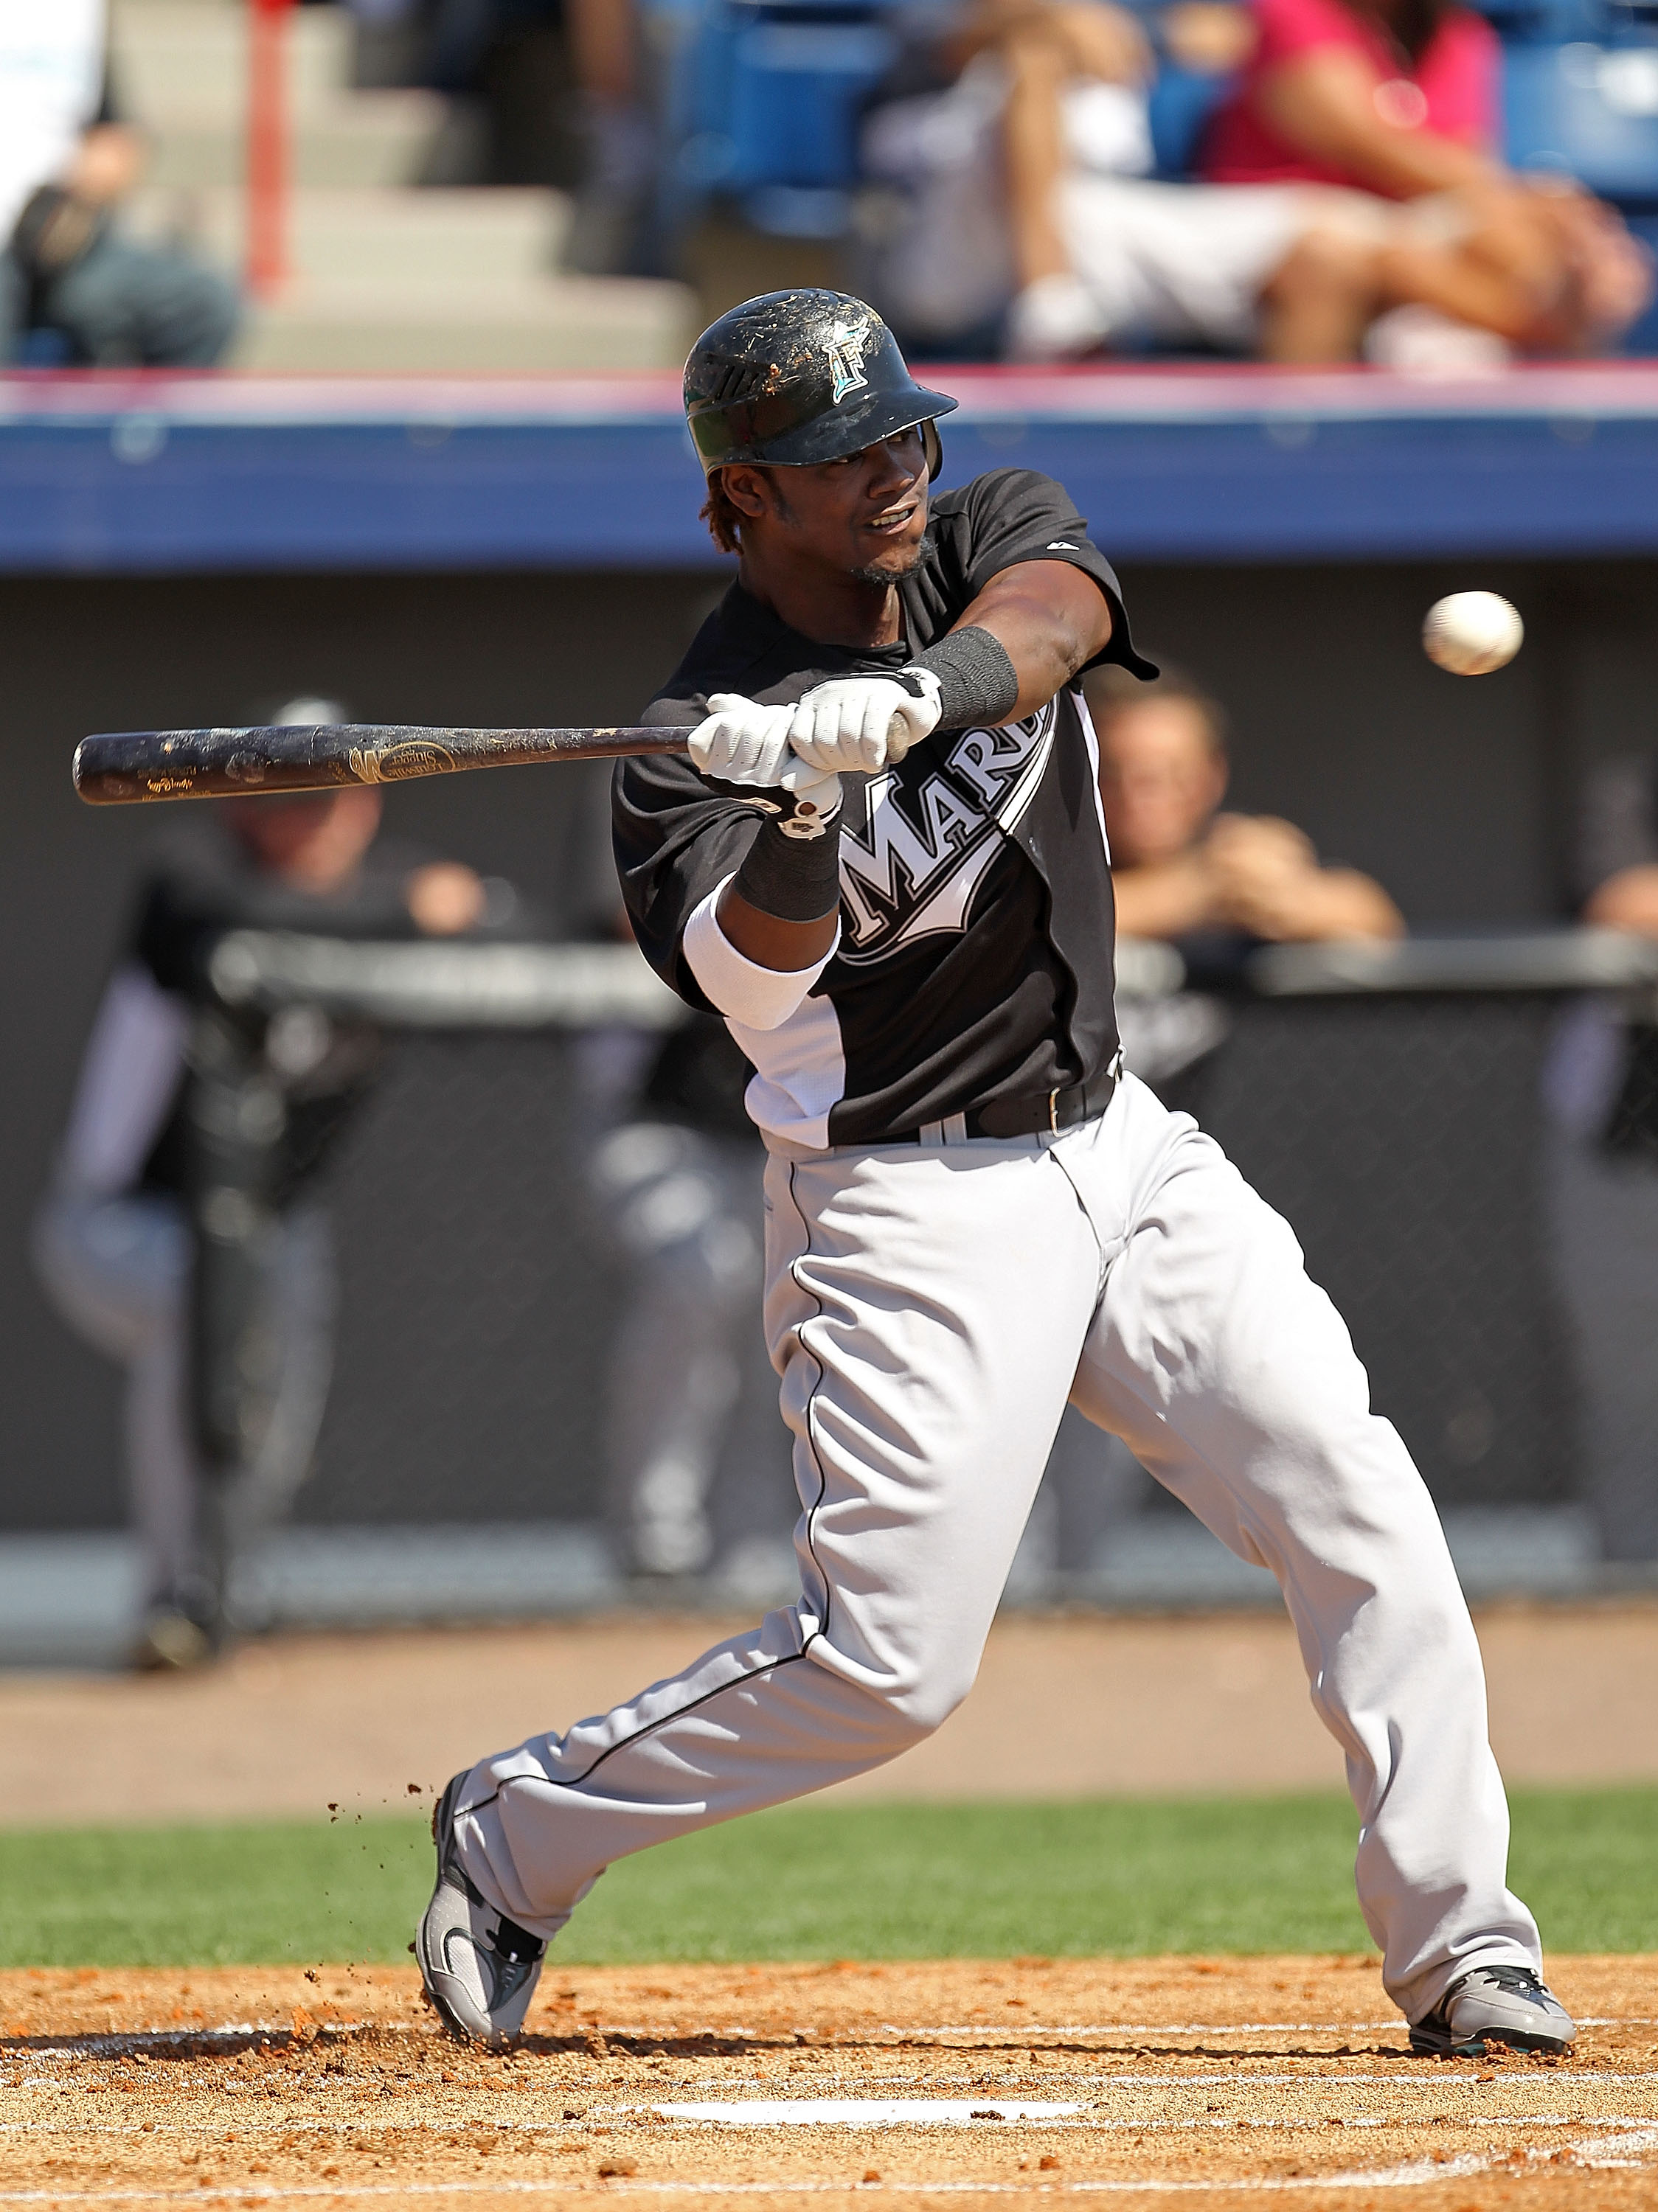 VIERA, FL - MARCH 02:  Hanley Ramirez #2 of the Florida Marlins bats during a Spring Training game against the Washington Nationals at Space Coast Stadium on March 2, 2011 in Viera, Florida.  (Photo by Mike Ehrmann/Getty Images)